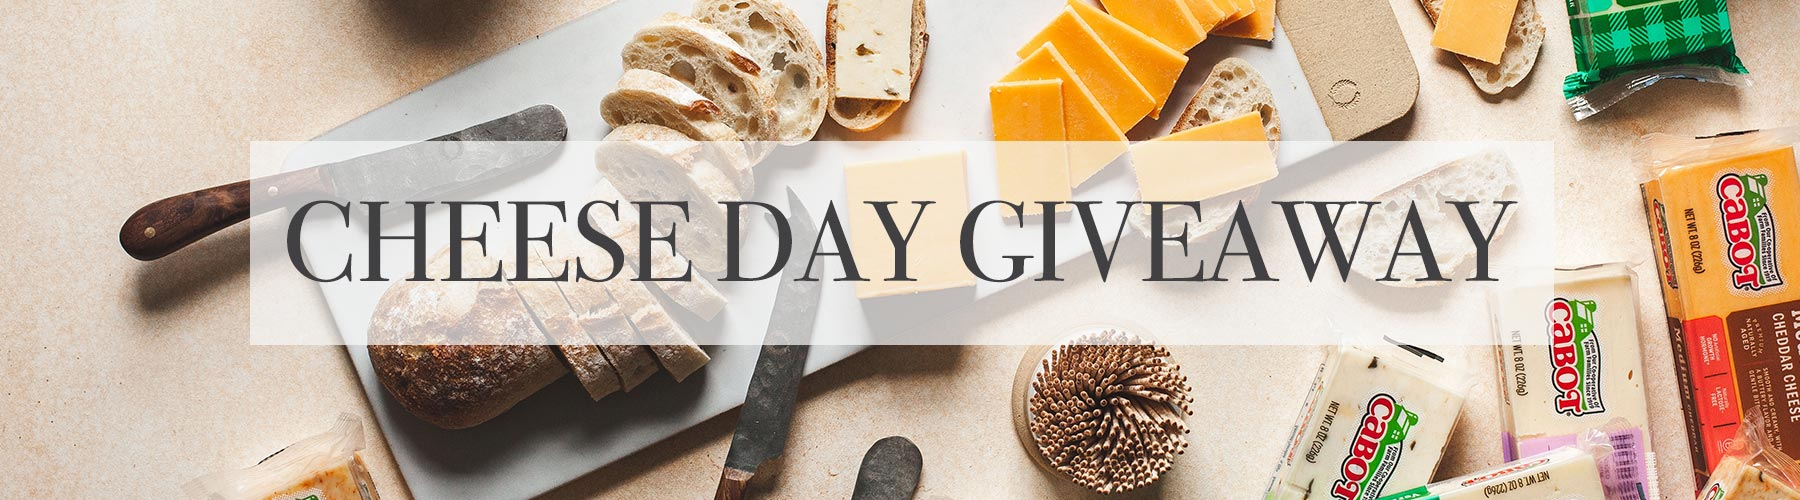 Cheese Day Giveaway